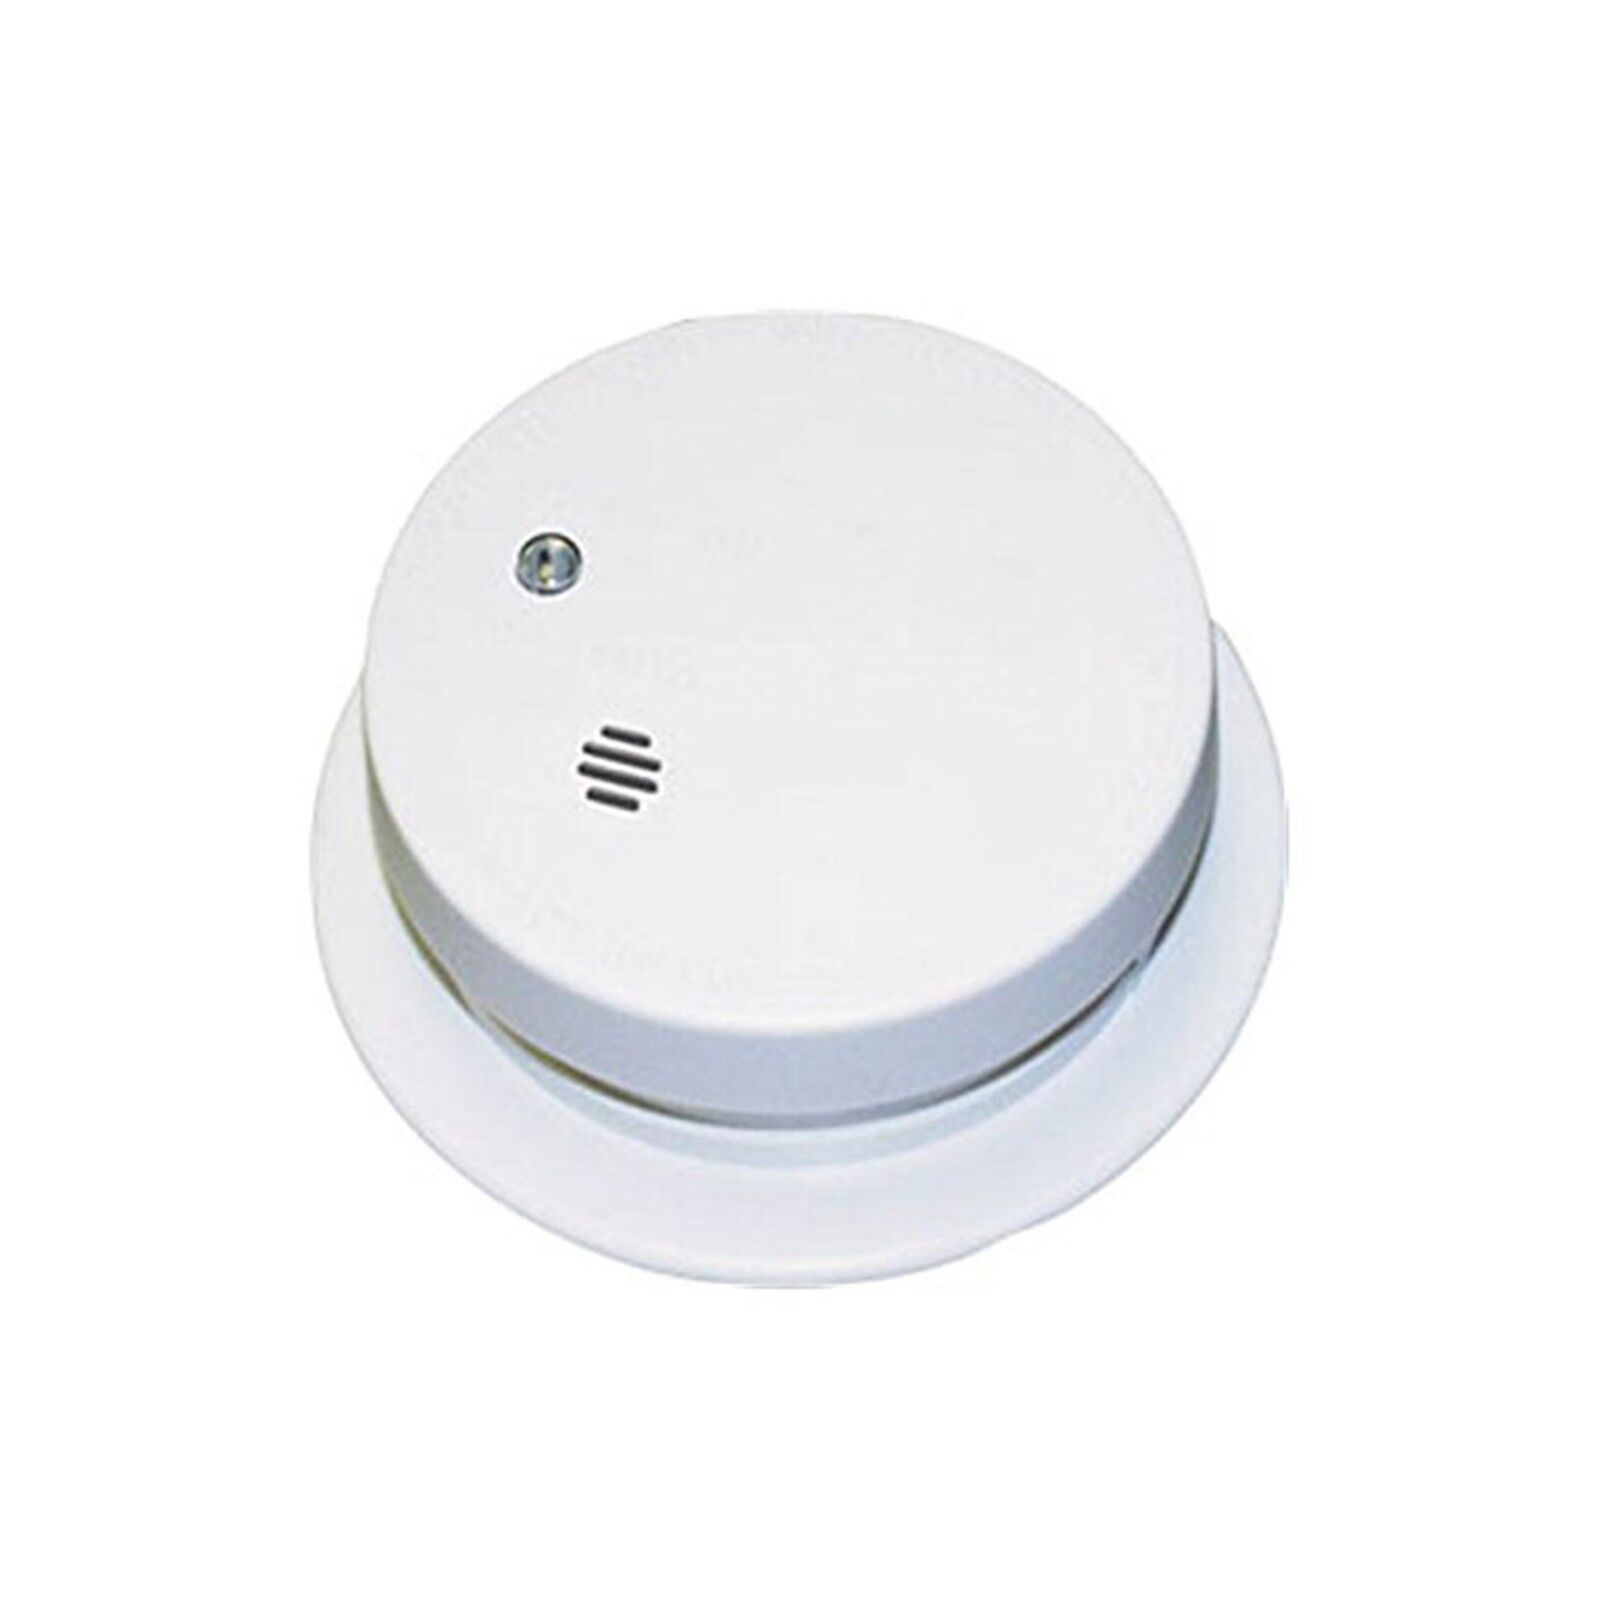 Kidde Smoke Detector, 9V Battery Powered Micro Ionization